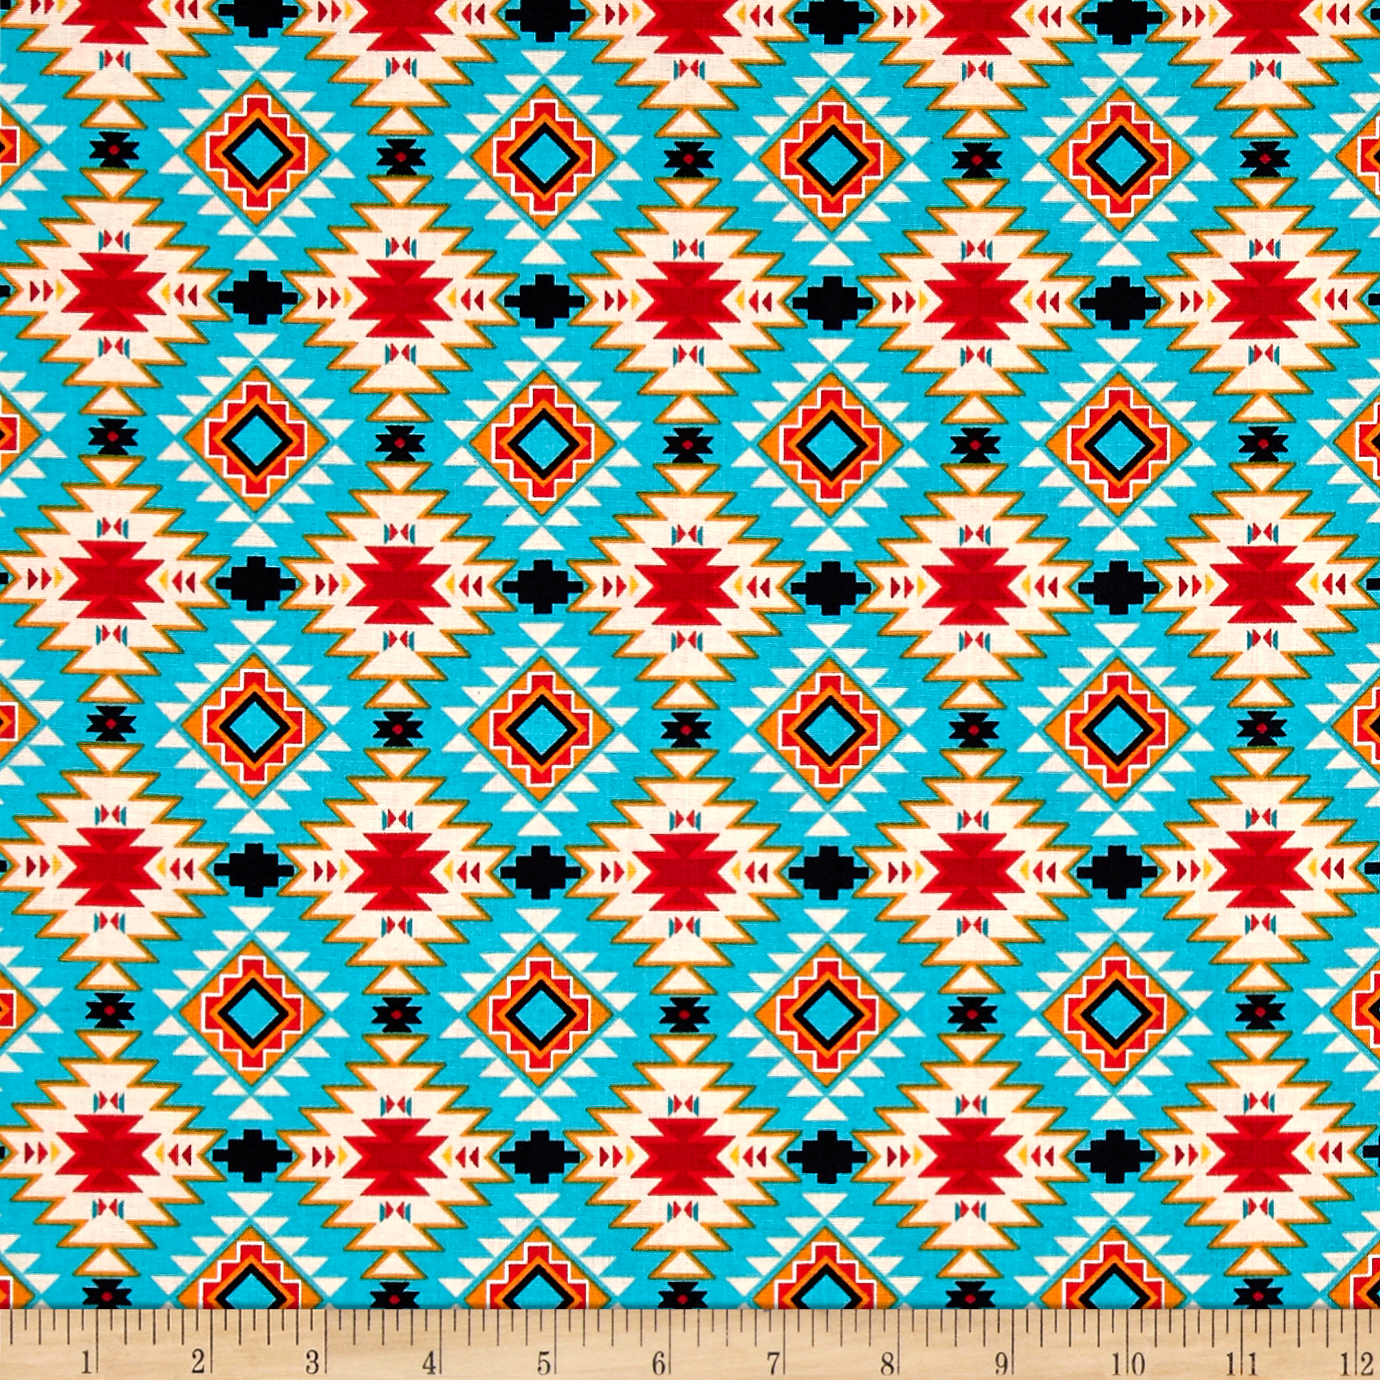 The Old Southwest Native Argyle Turquoise/Multi Fabric By The Yard by David in USA